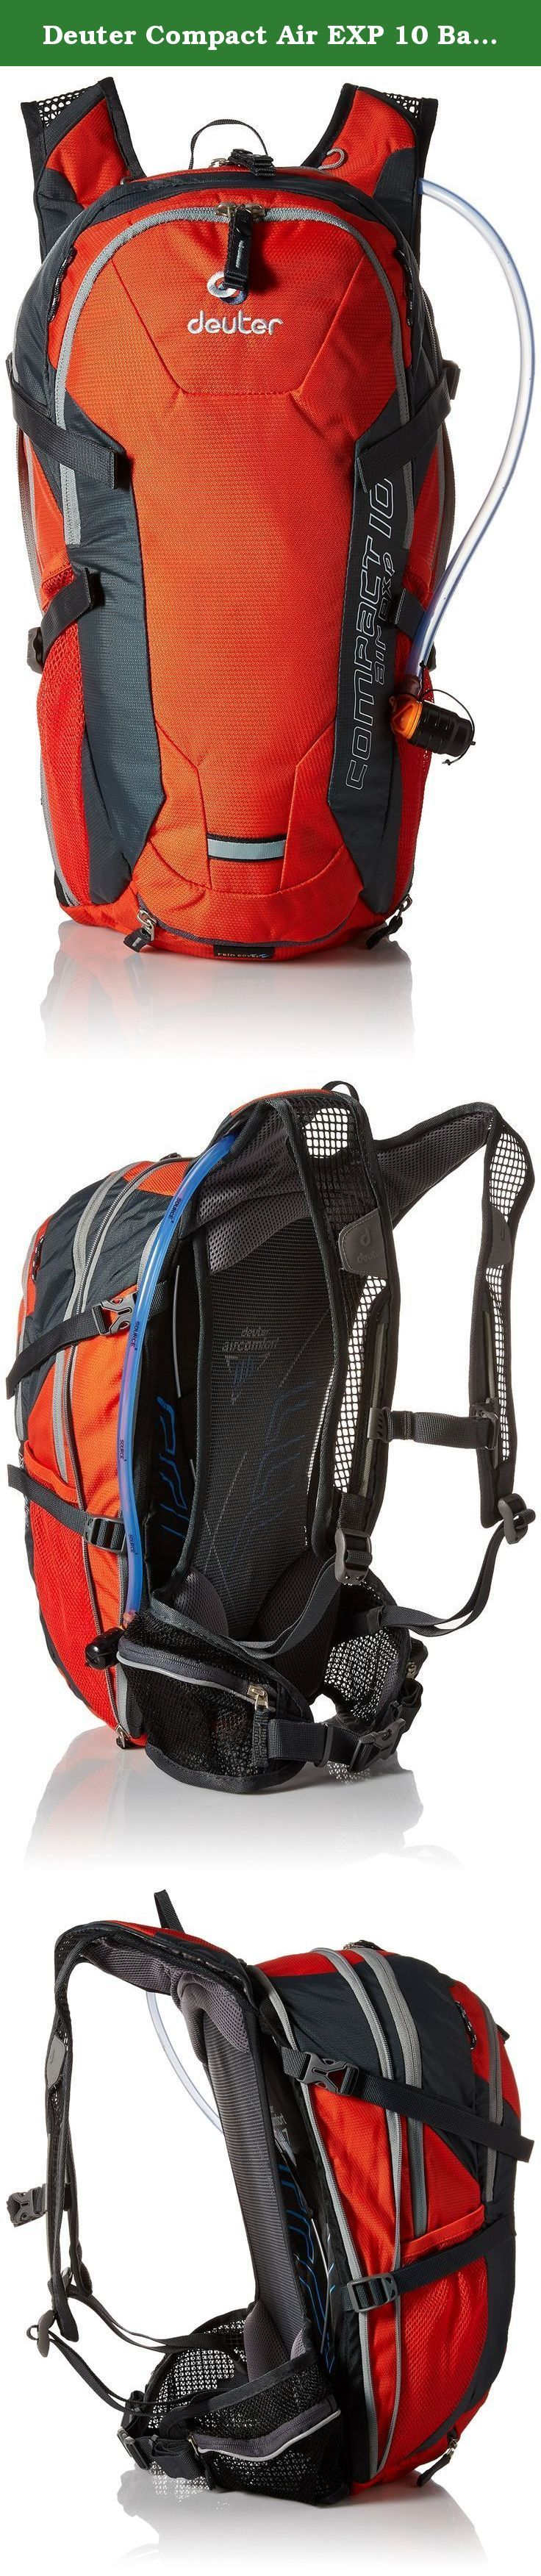 Deuter Compact Air EXP 10 Backpack with 3L Reservoir - Papaya/Granite. Multi-talented bike backpack with maximum back ventilation in the female specific version. The women's rucksack features a flexible spring steel frame and an effective, three sided ventilation system - high carrying comfort, low weight! Mesh shoulder straps, mesh hip fins with two zipped mesh pockets and Aircomfort FlexLite back system for three-sided ventilation. Hydration system compatible with separate bladder...